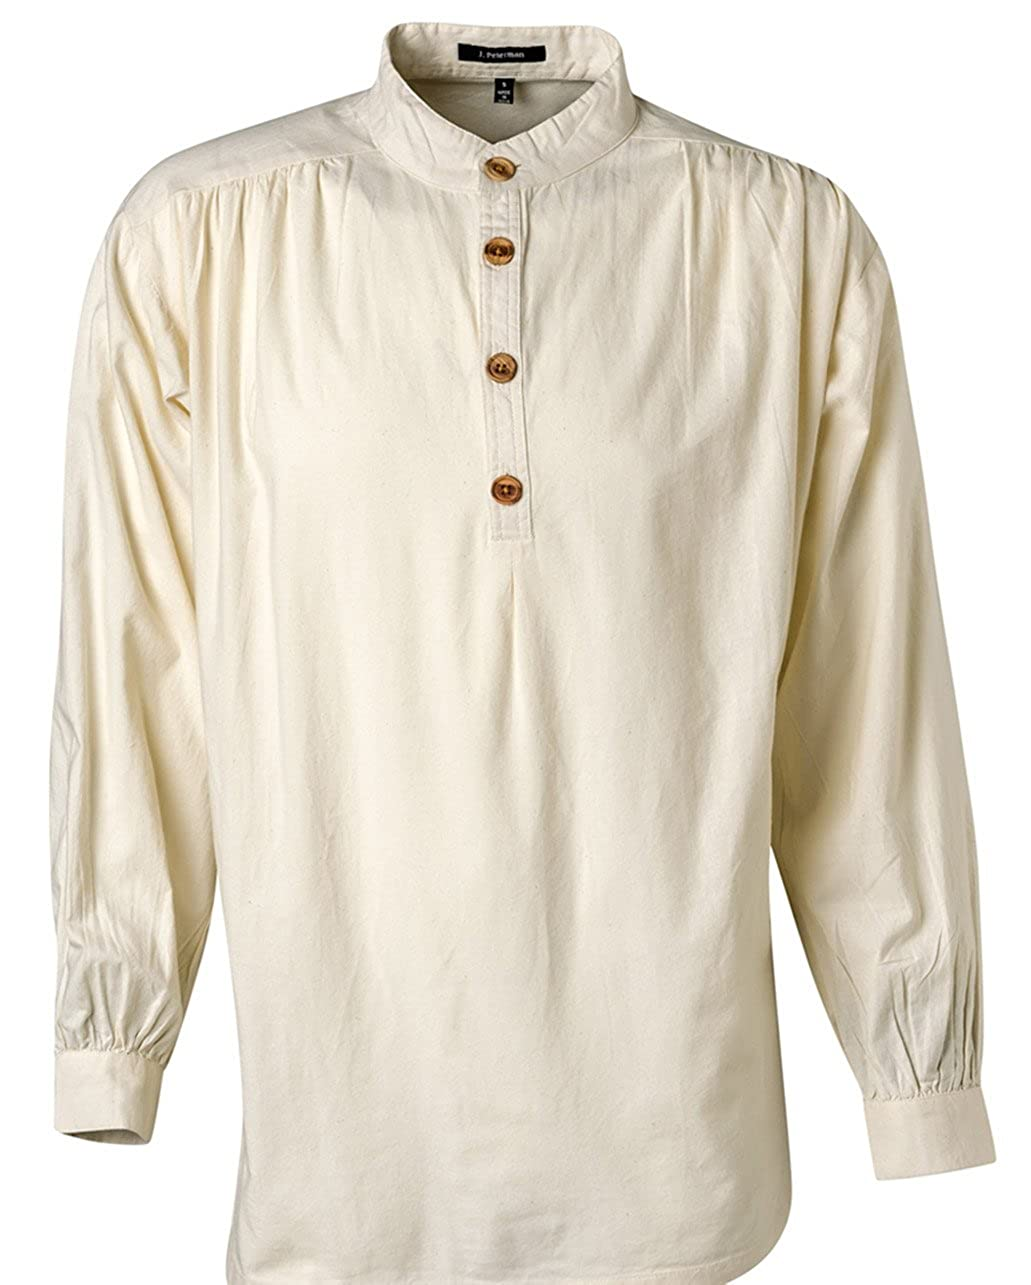 Victorian Inspired Womens Clothing The J. Peterman Shirt $44.85 AT vintagedancer.com